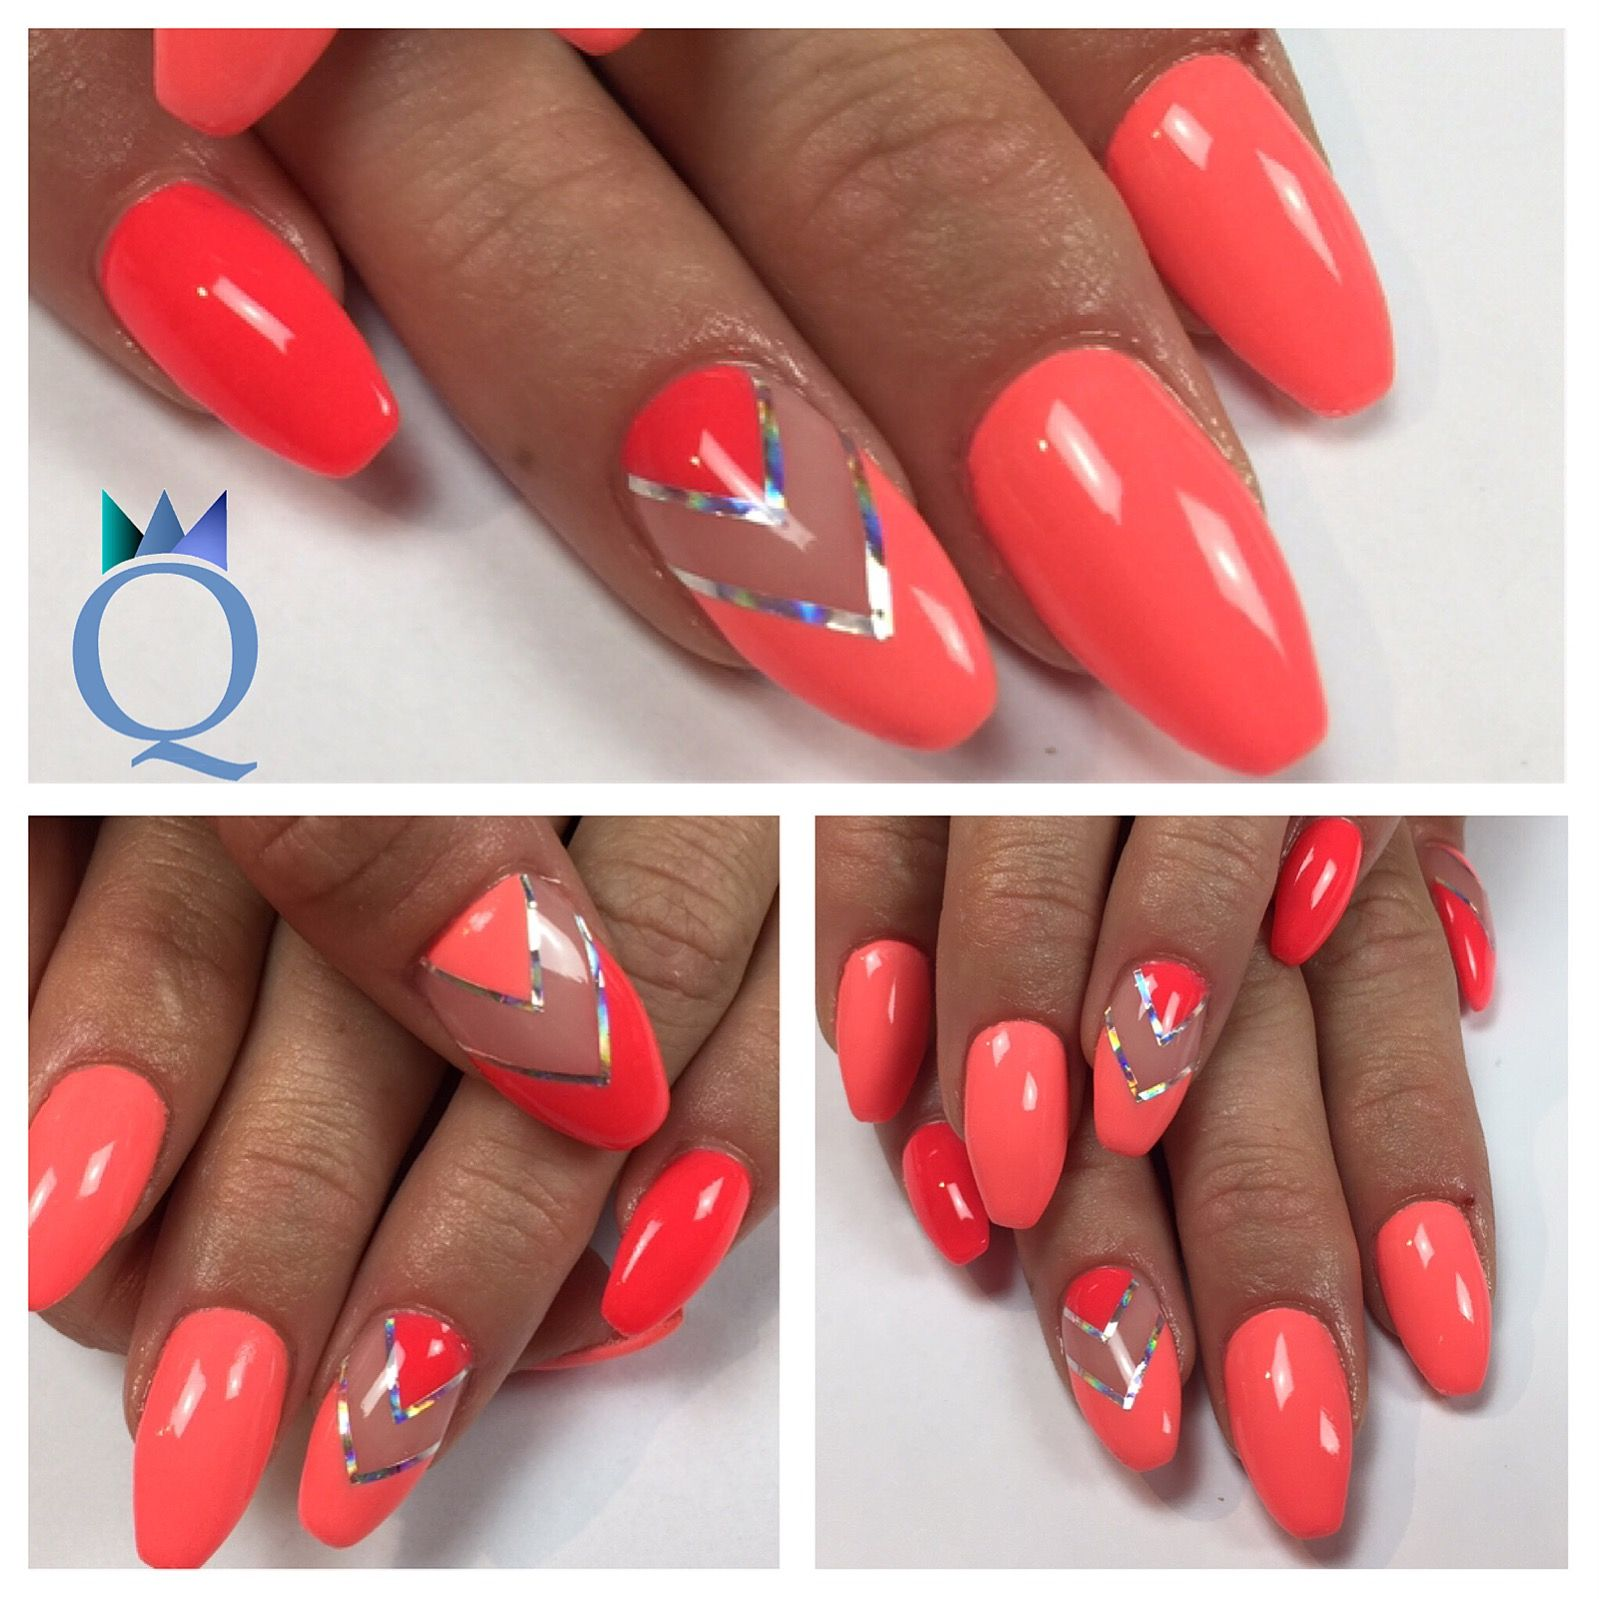 #Coffinnails #Ballerina #Shape #Gelnails #Nails #Coral #Neon #Akyado